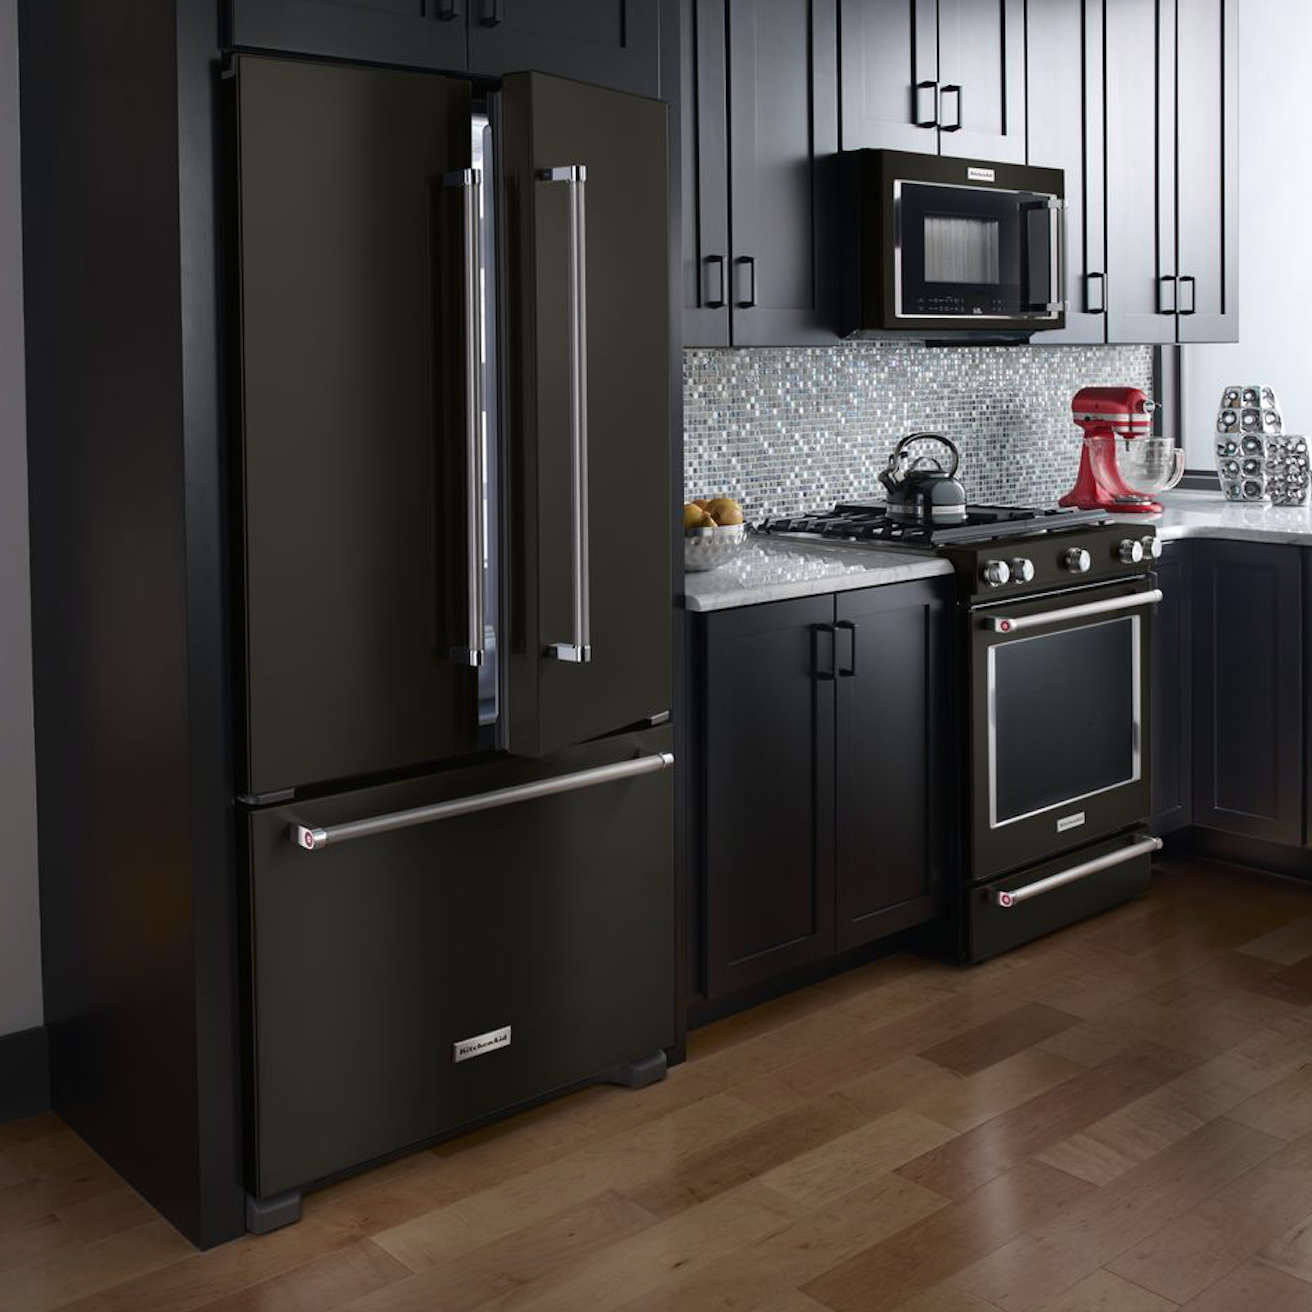 Kitchen Remodel Black Appliances: GET THE SCOOP AND DISH IT OUT